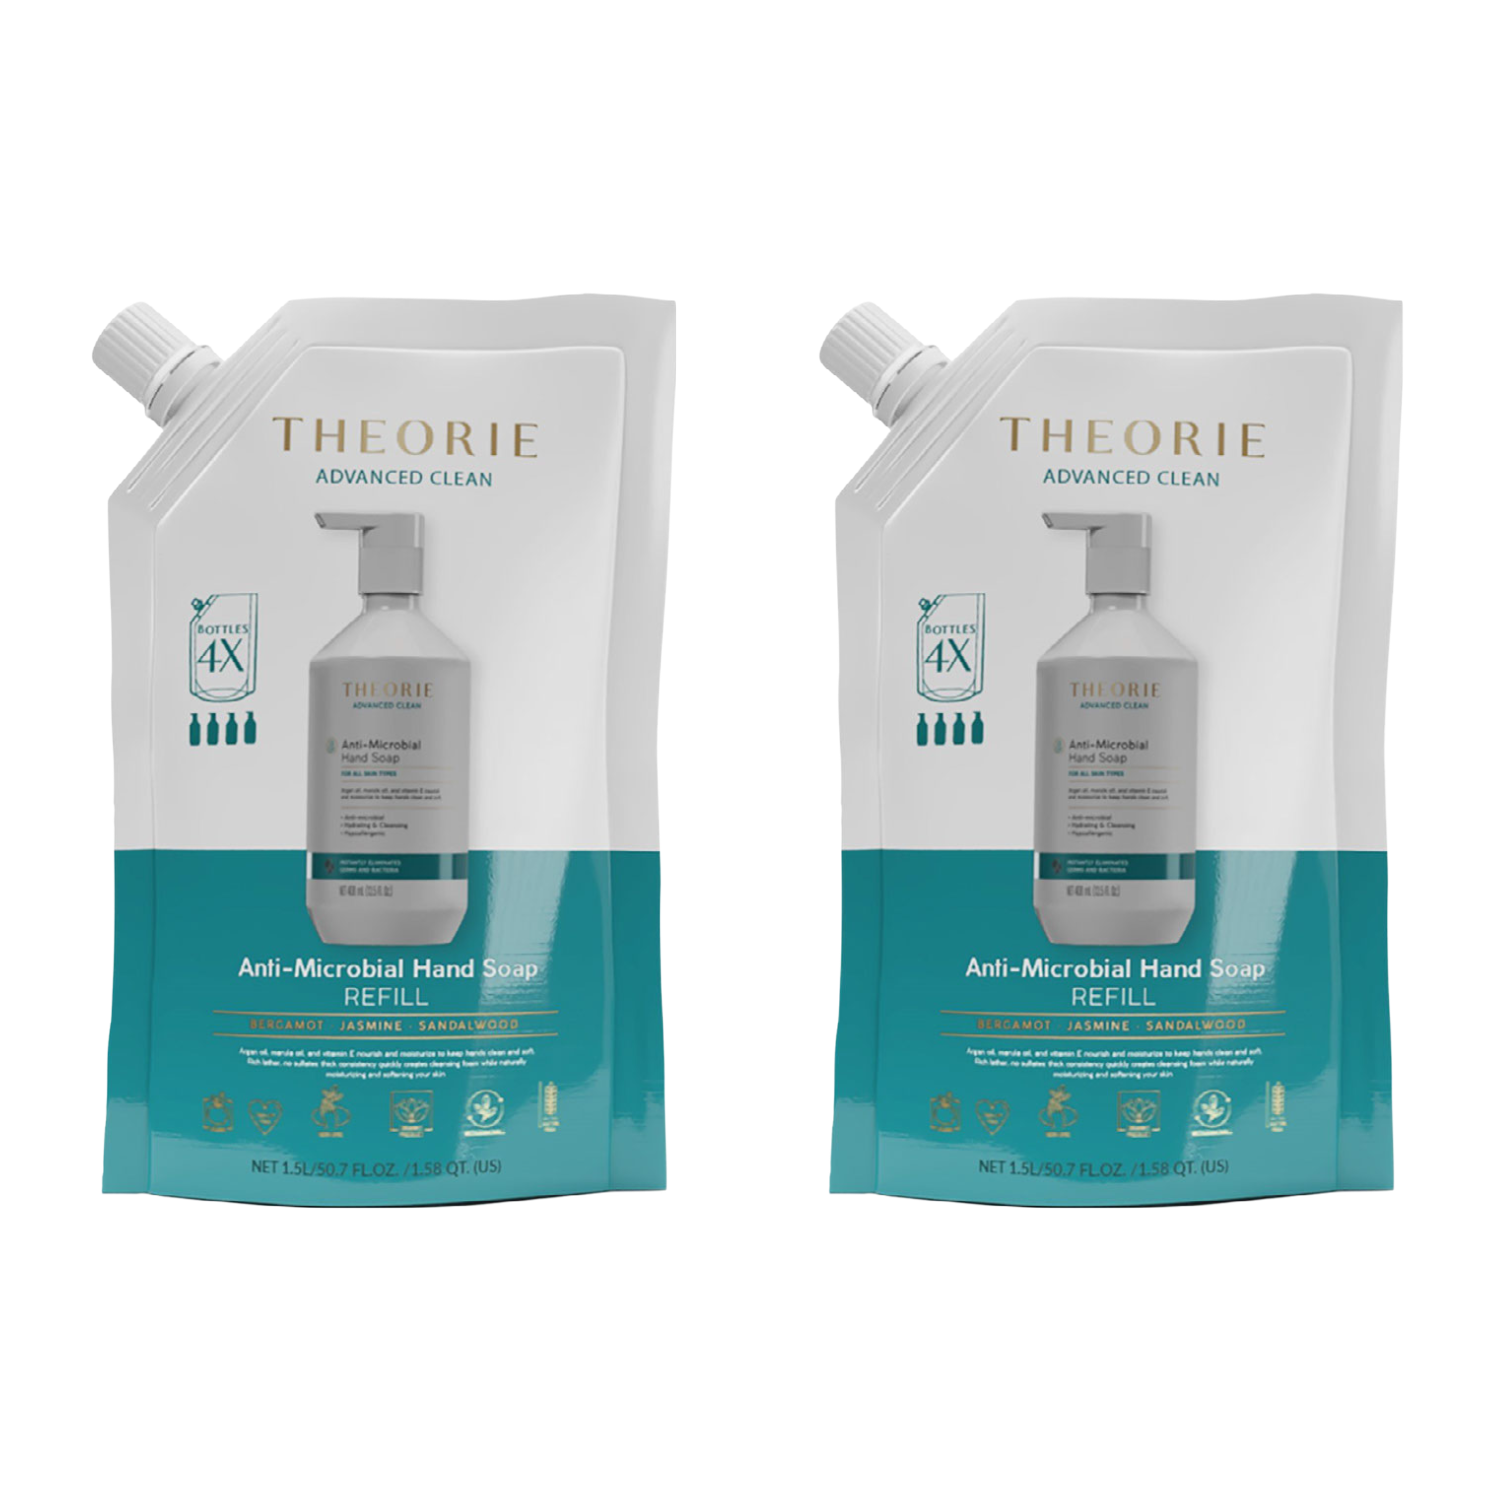 Theorie: Anti-Microbial Hand Soap (Two Pack Refill)